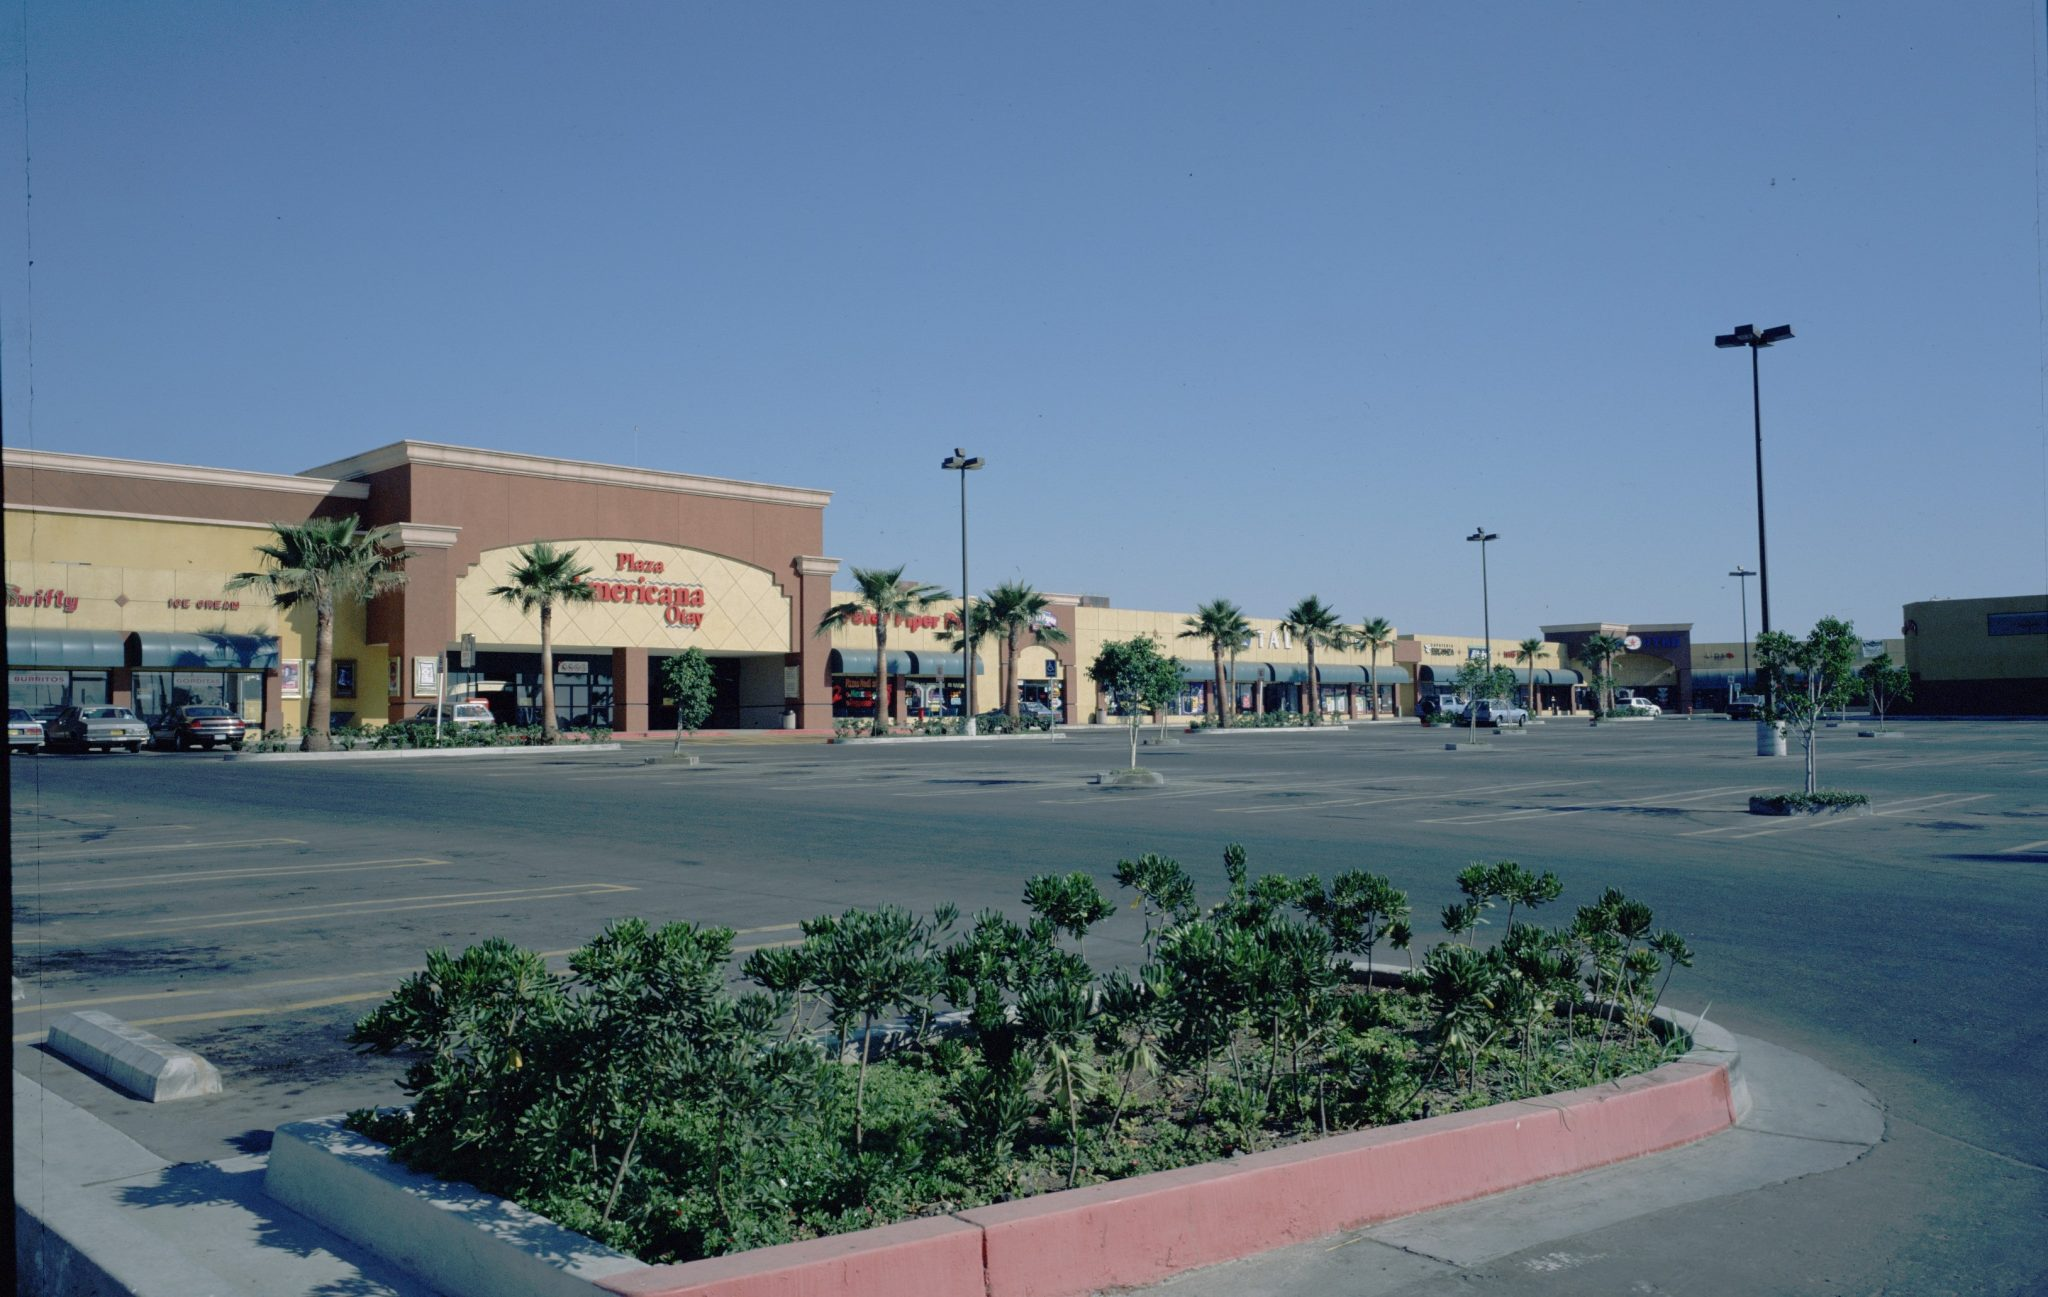 Plaza Americana Otay Shopping Mall in Tijuana